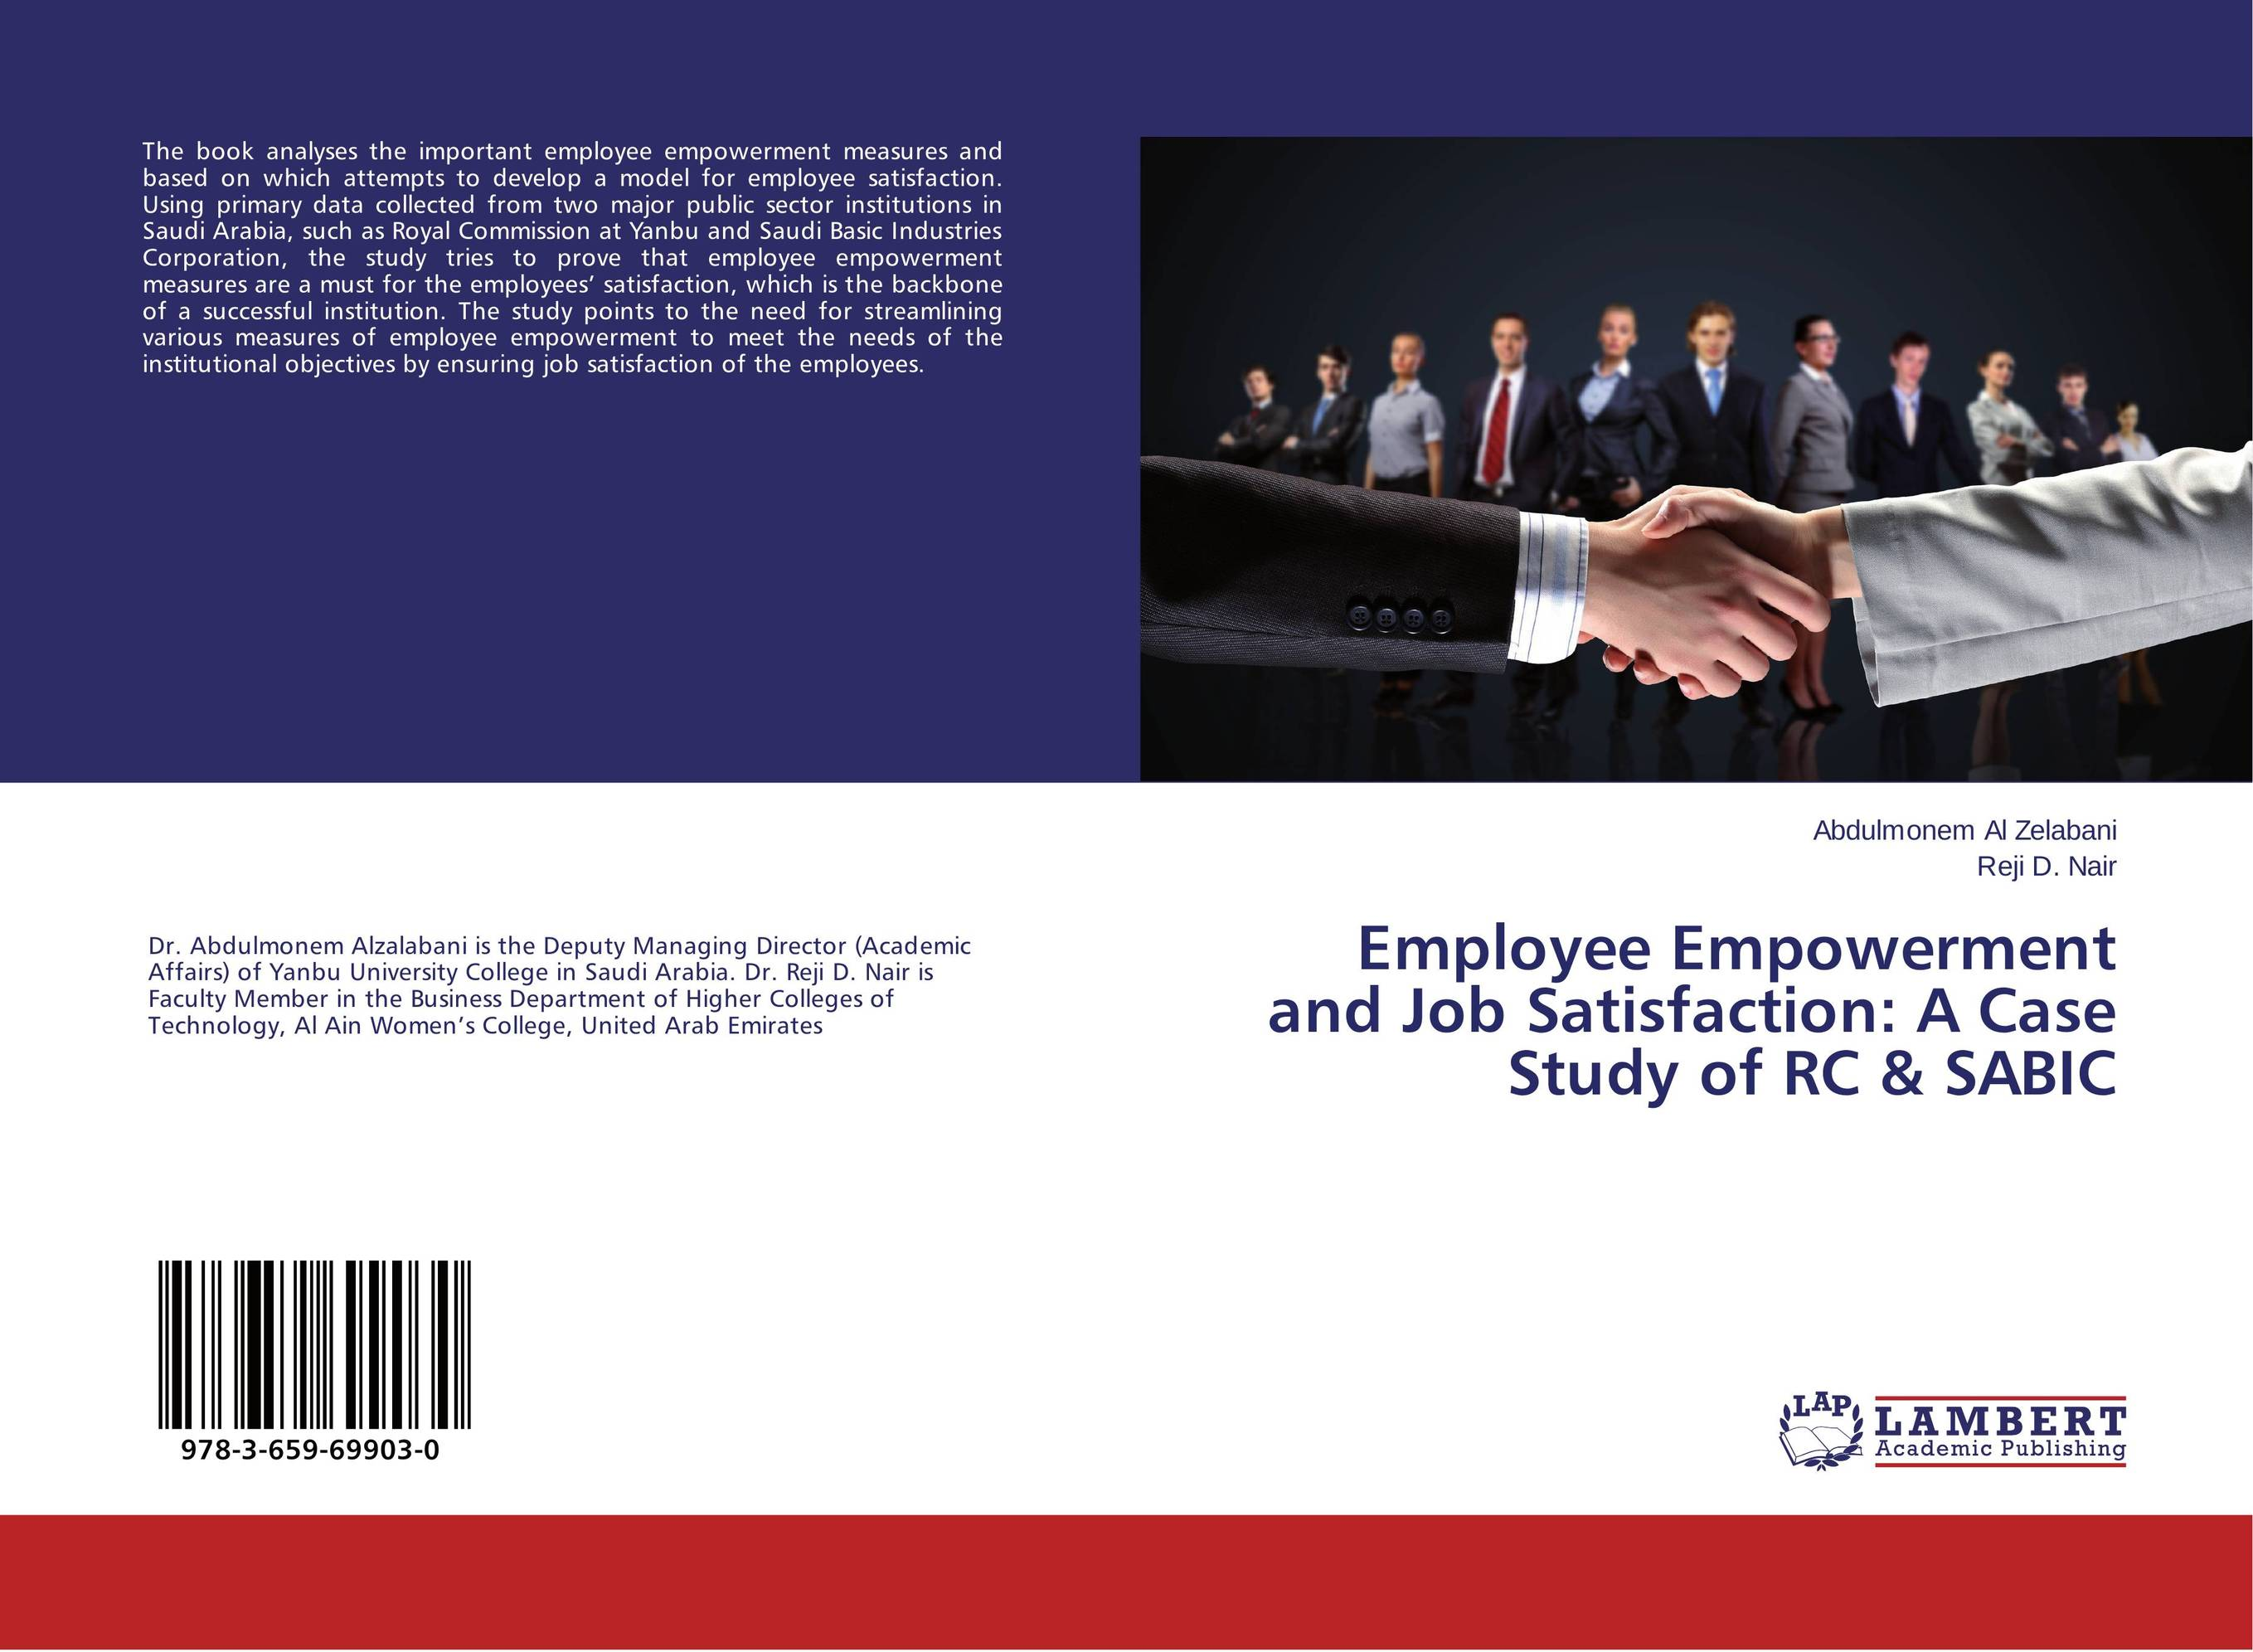 Employee Empowerment and Job Satisfaction: A Case Study of RC & SABIC